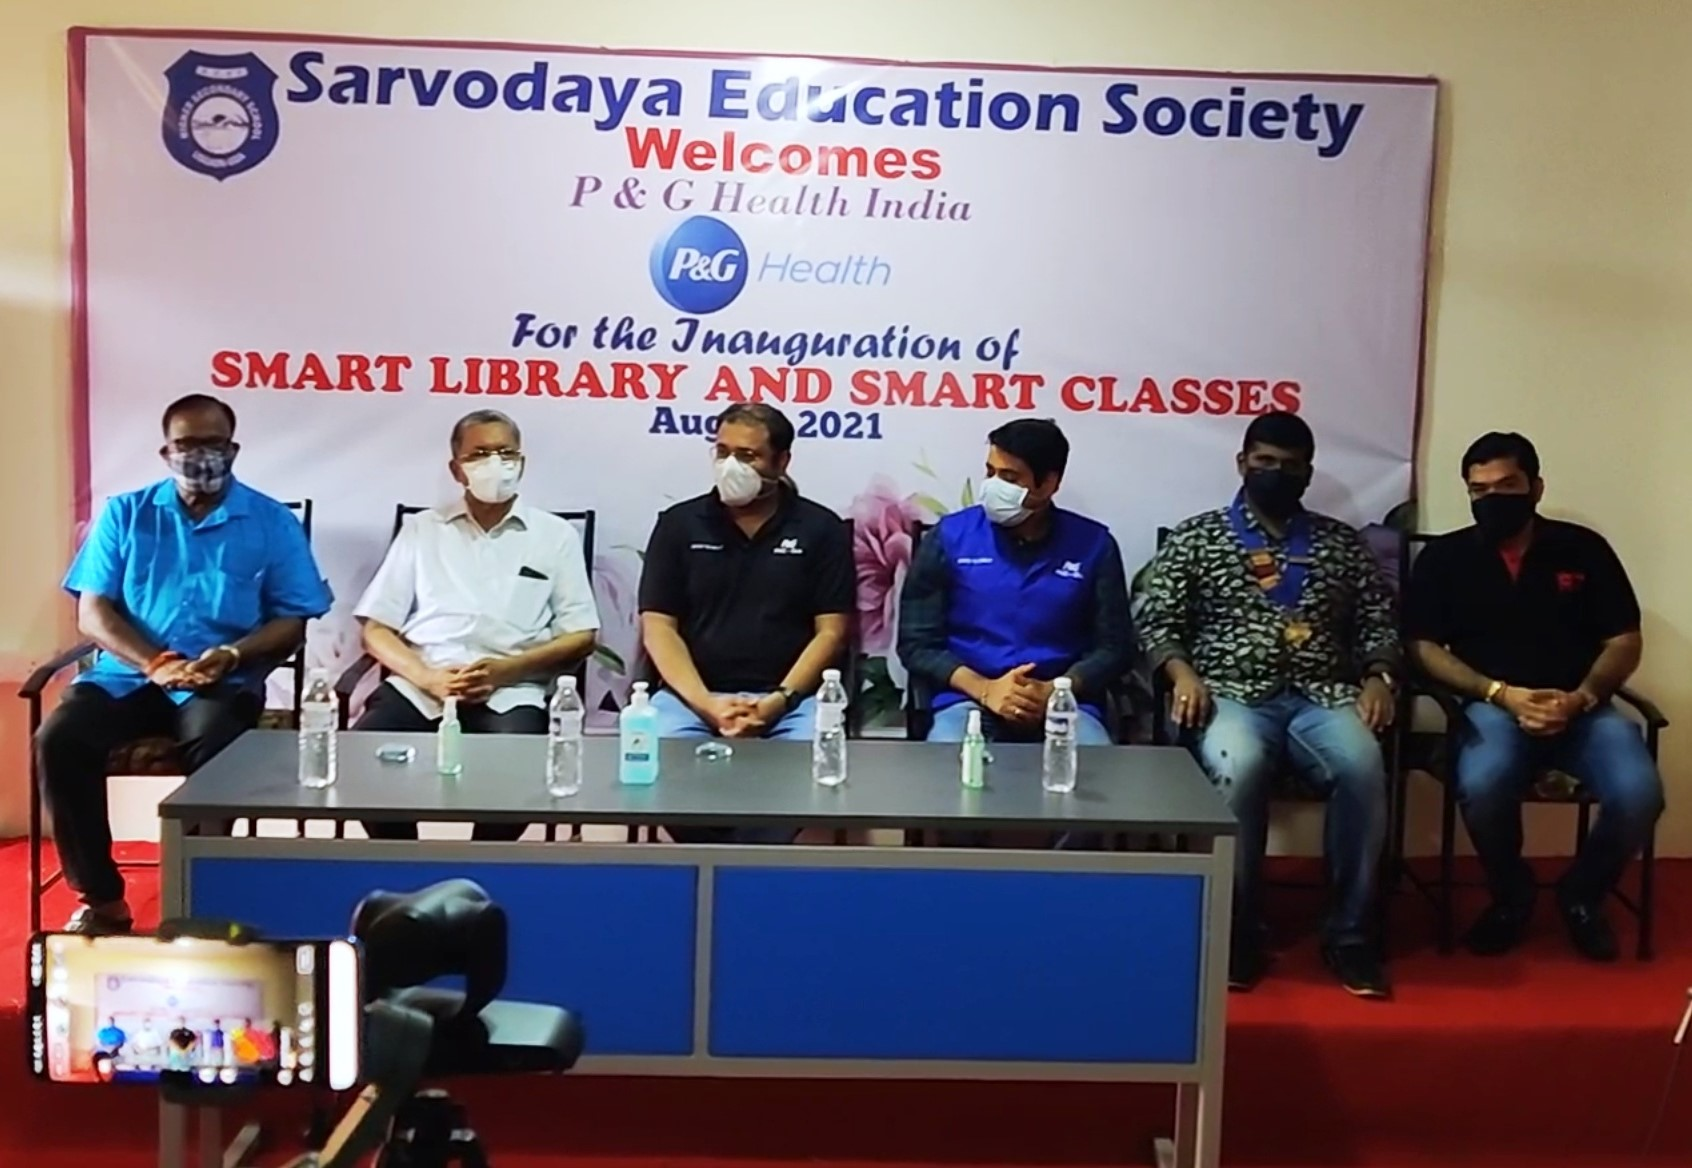 Inauguration of Smart Library & Smart Classrooms